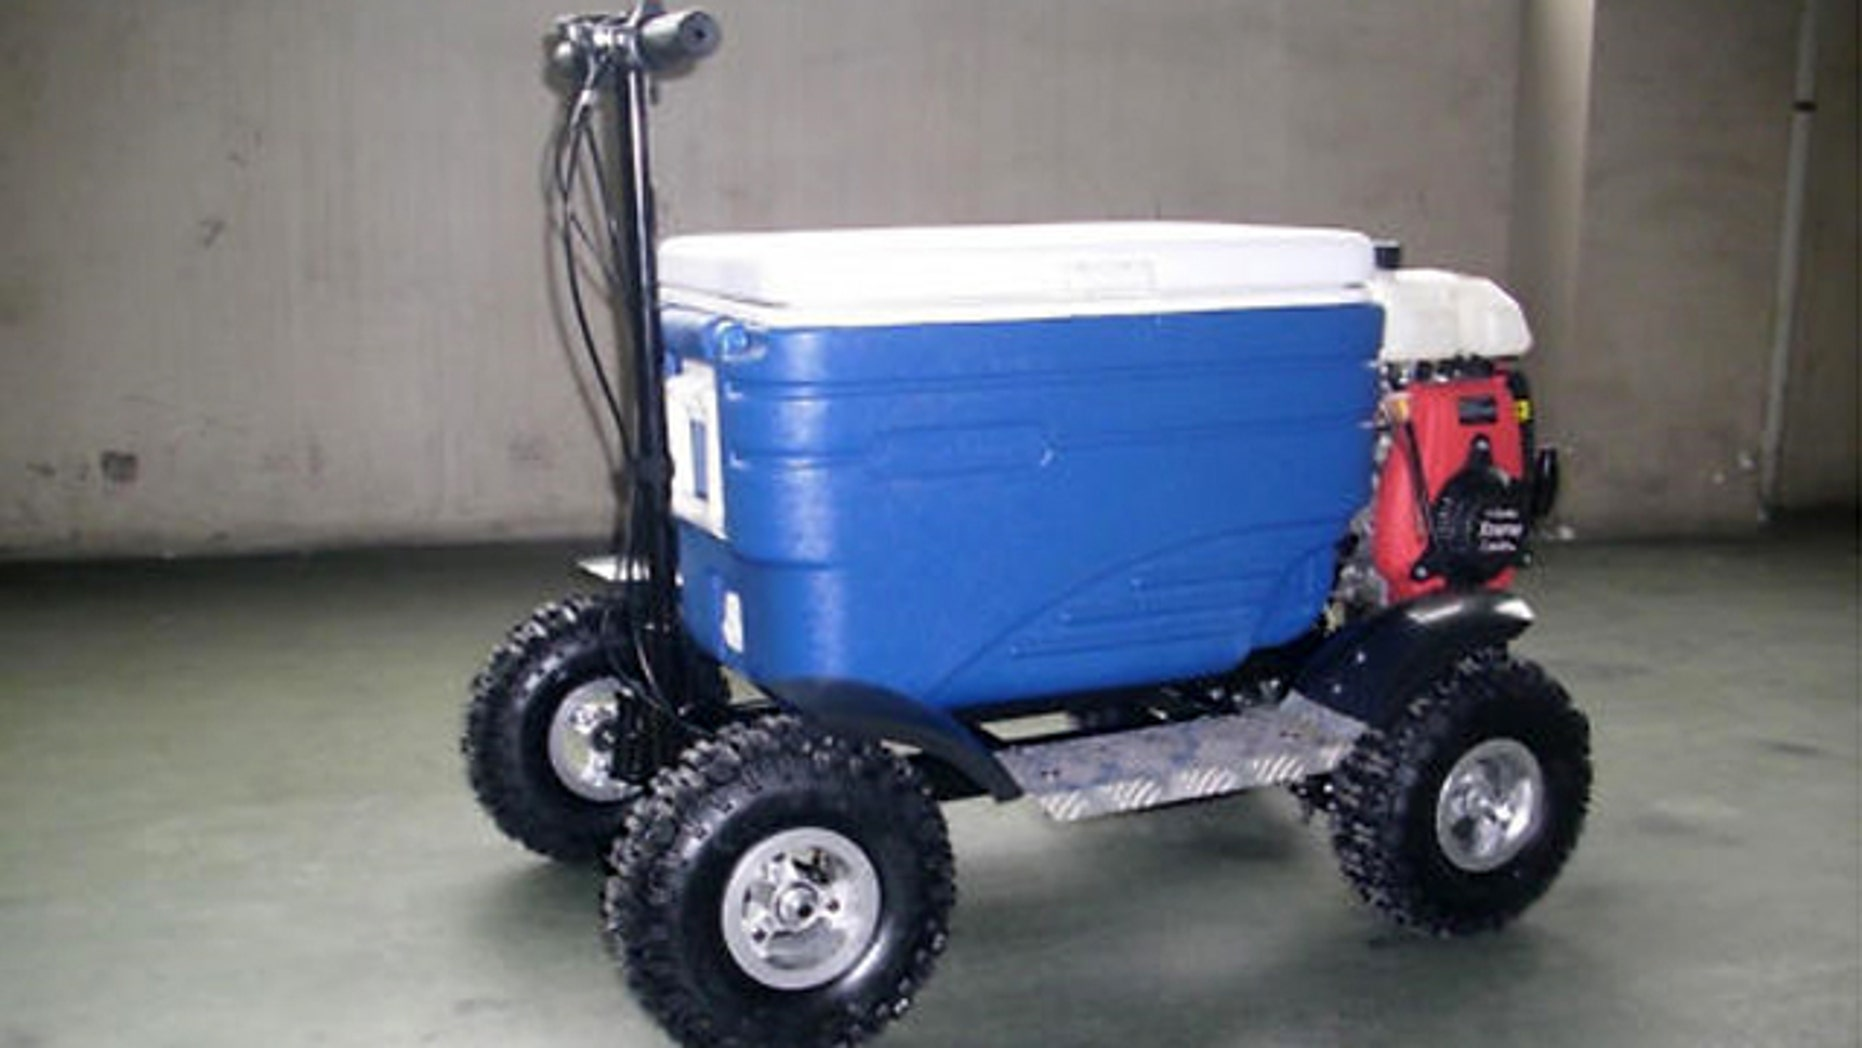 File photo of a Motorized Esky Sold on eBay by Williesnoops